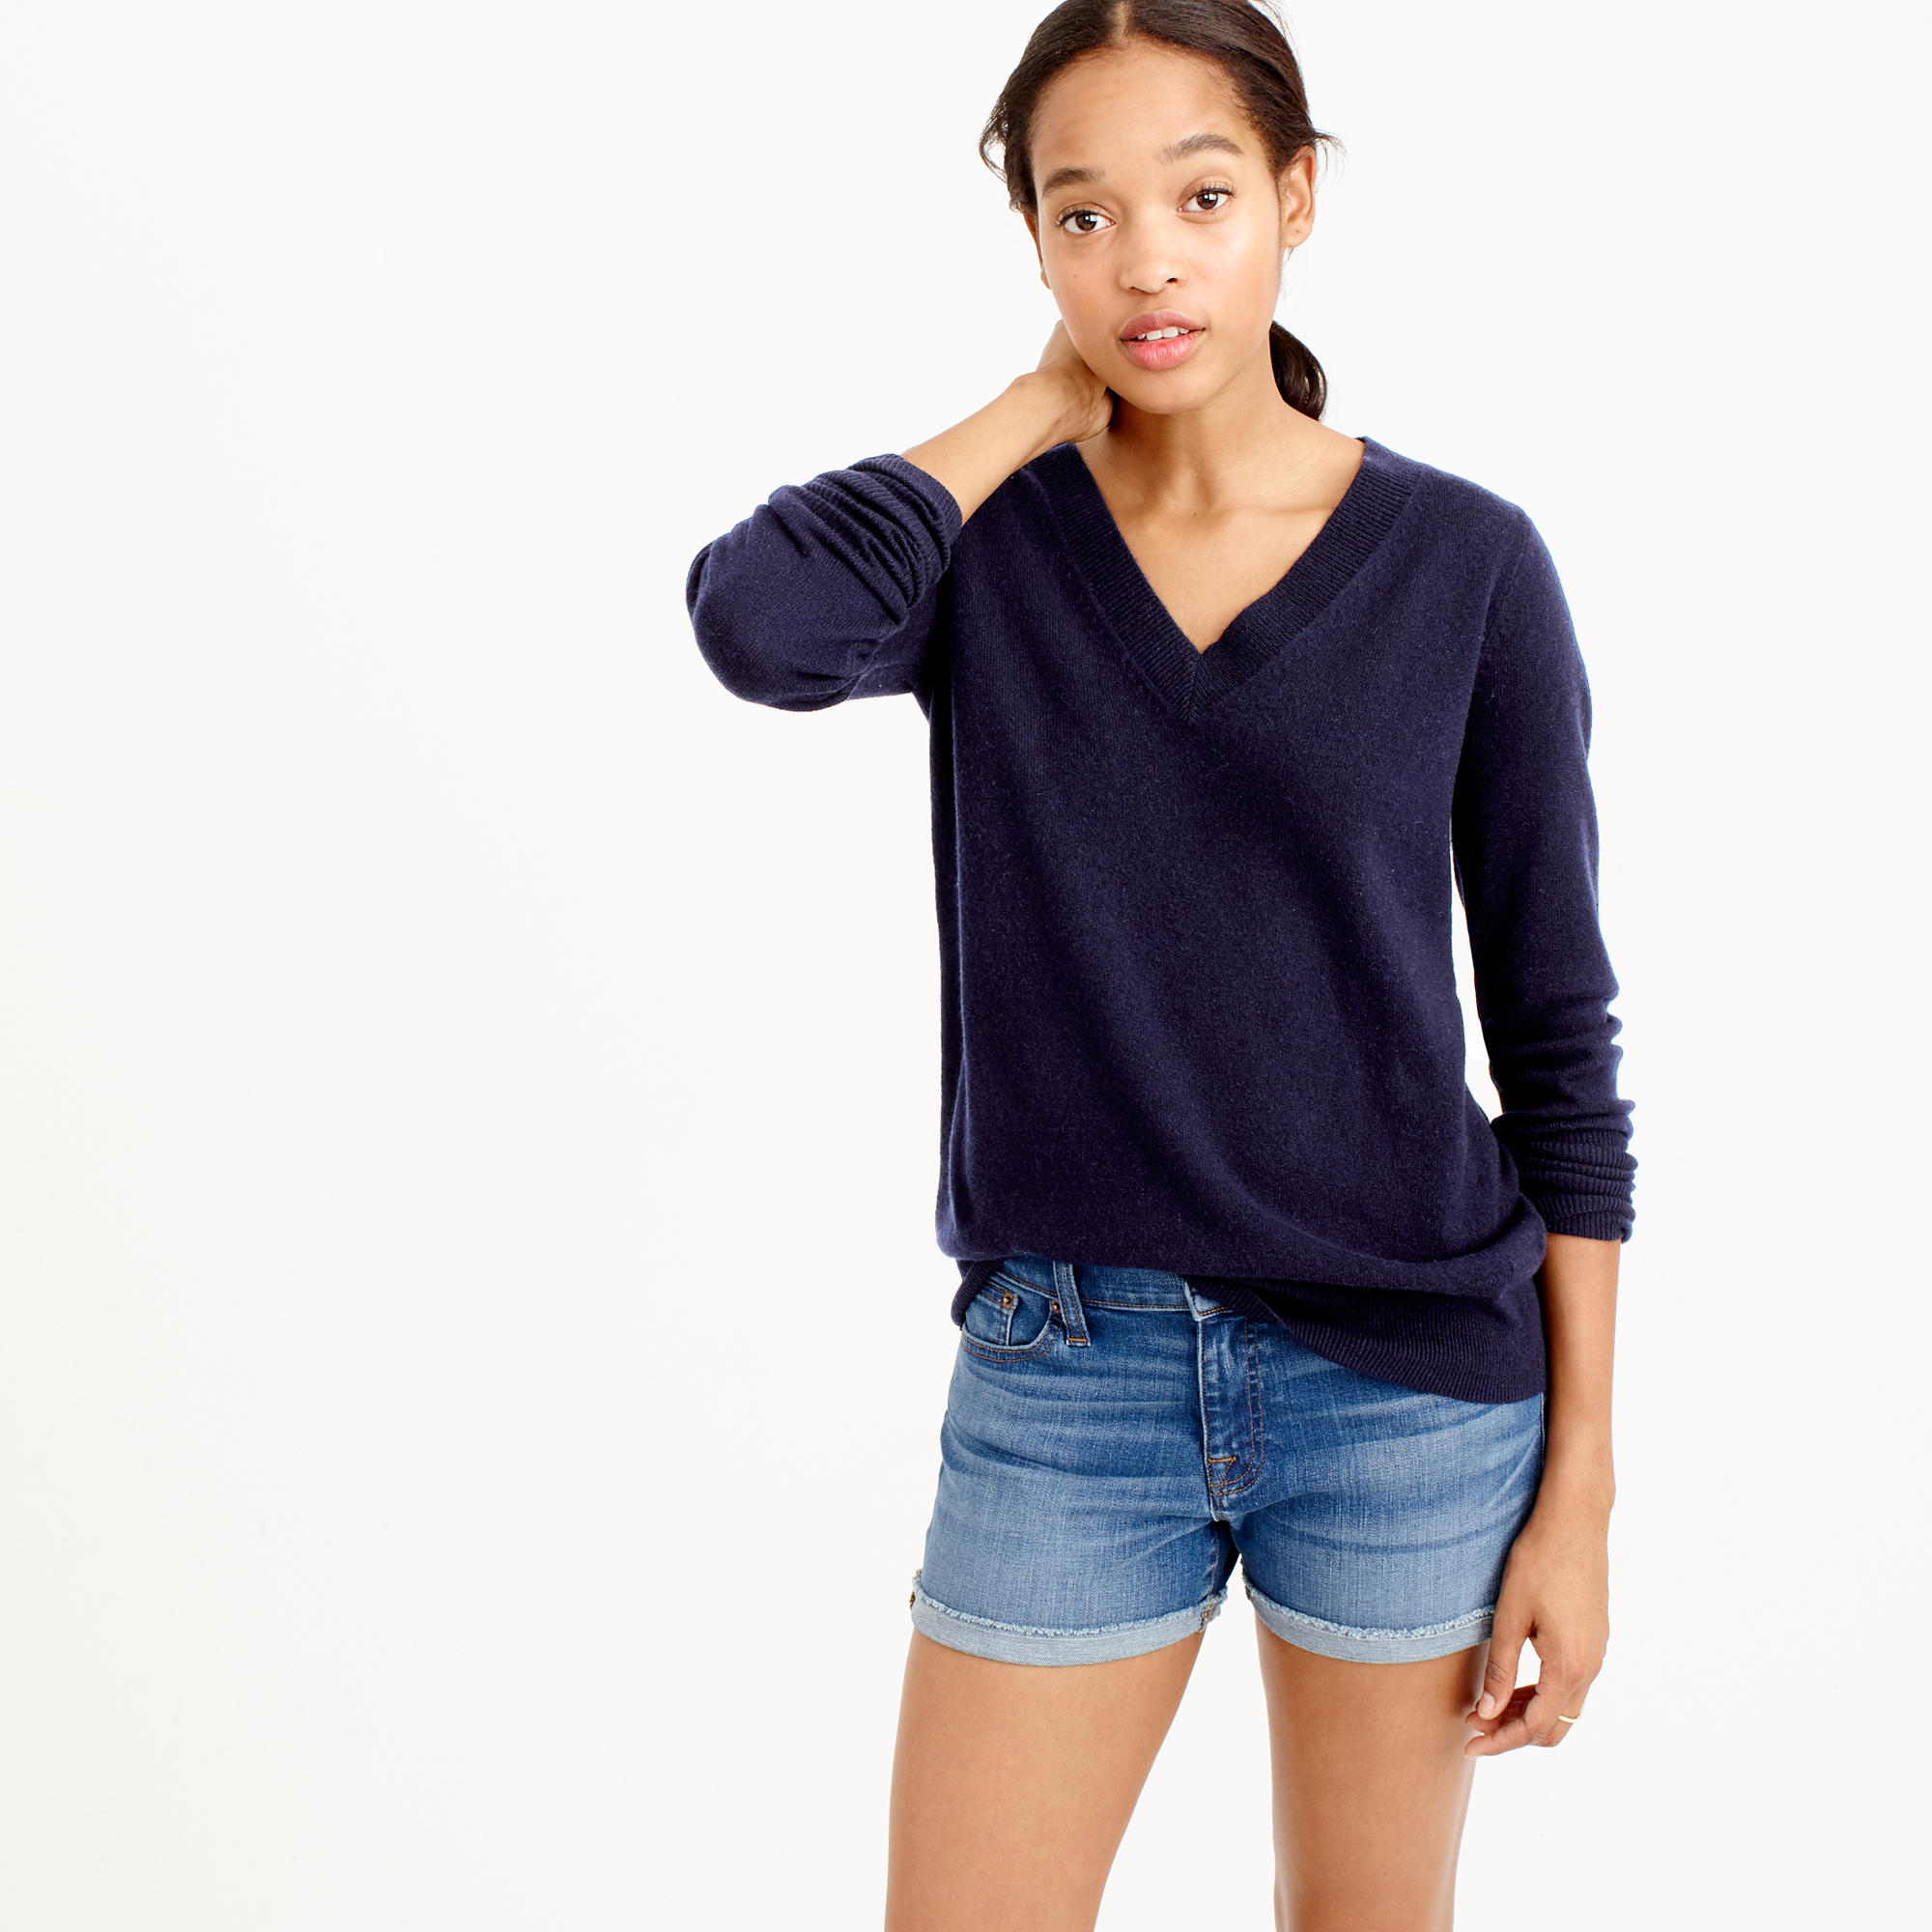 Italian cashmere V-neck sweater : Women cashmere | Factory